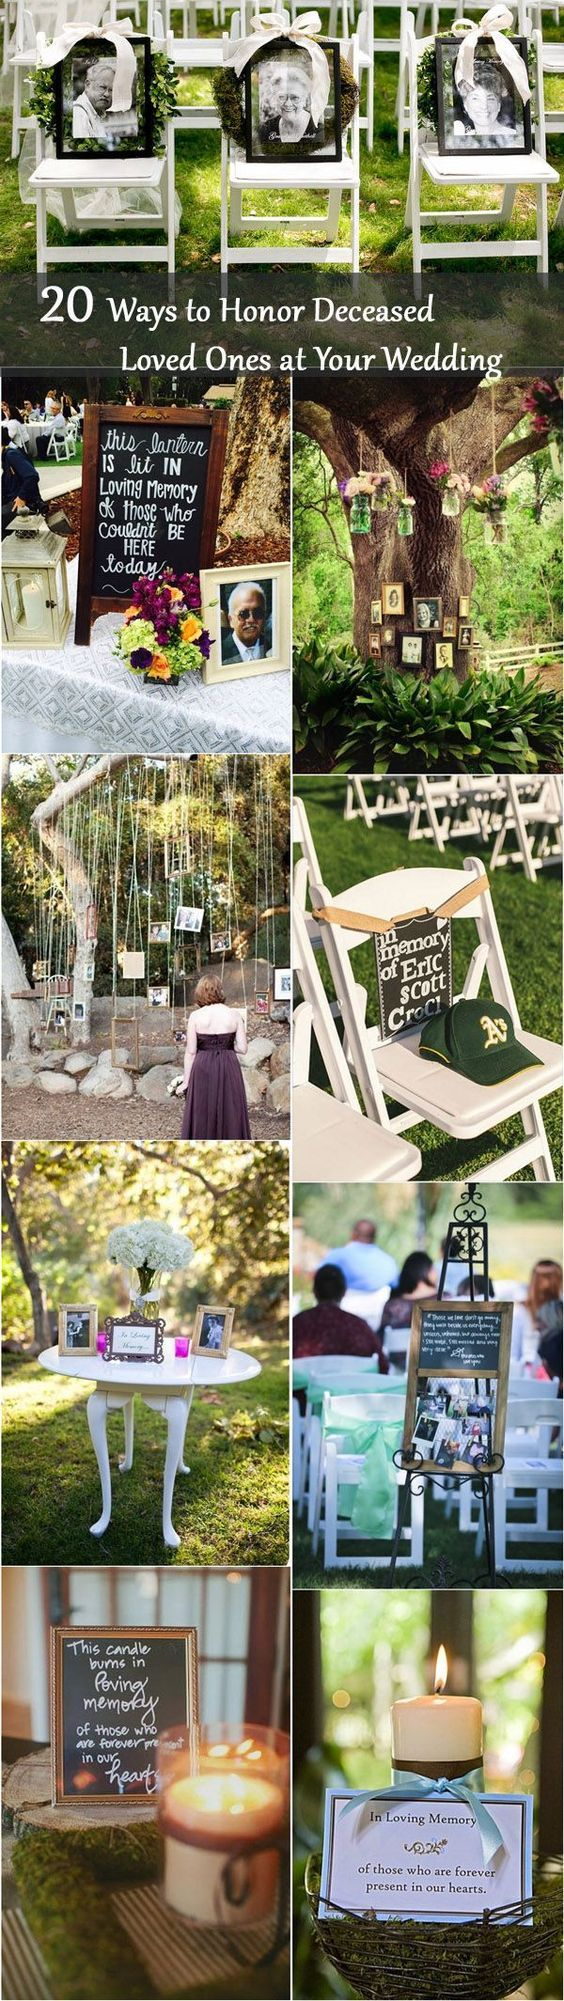 unique wedding ideas to honor lost loved ones / http://www.deerpearlflowers.com/ways-to-honor-deceased-loved-ones-at-your-wedding/